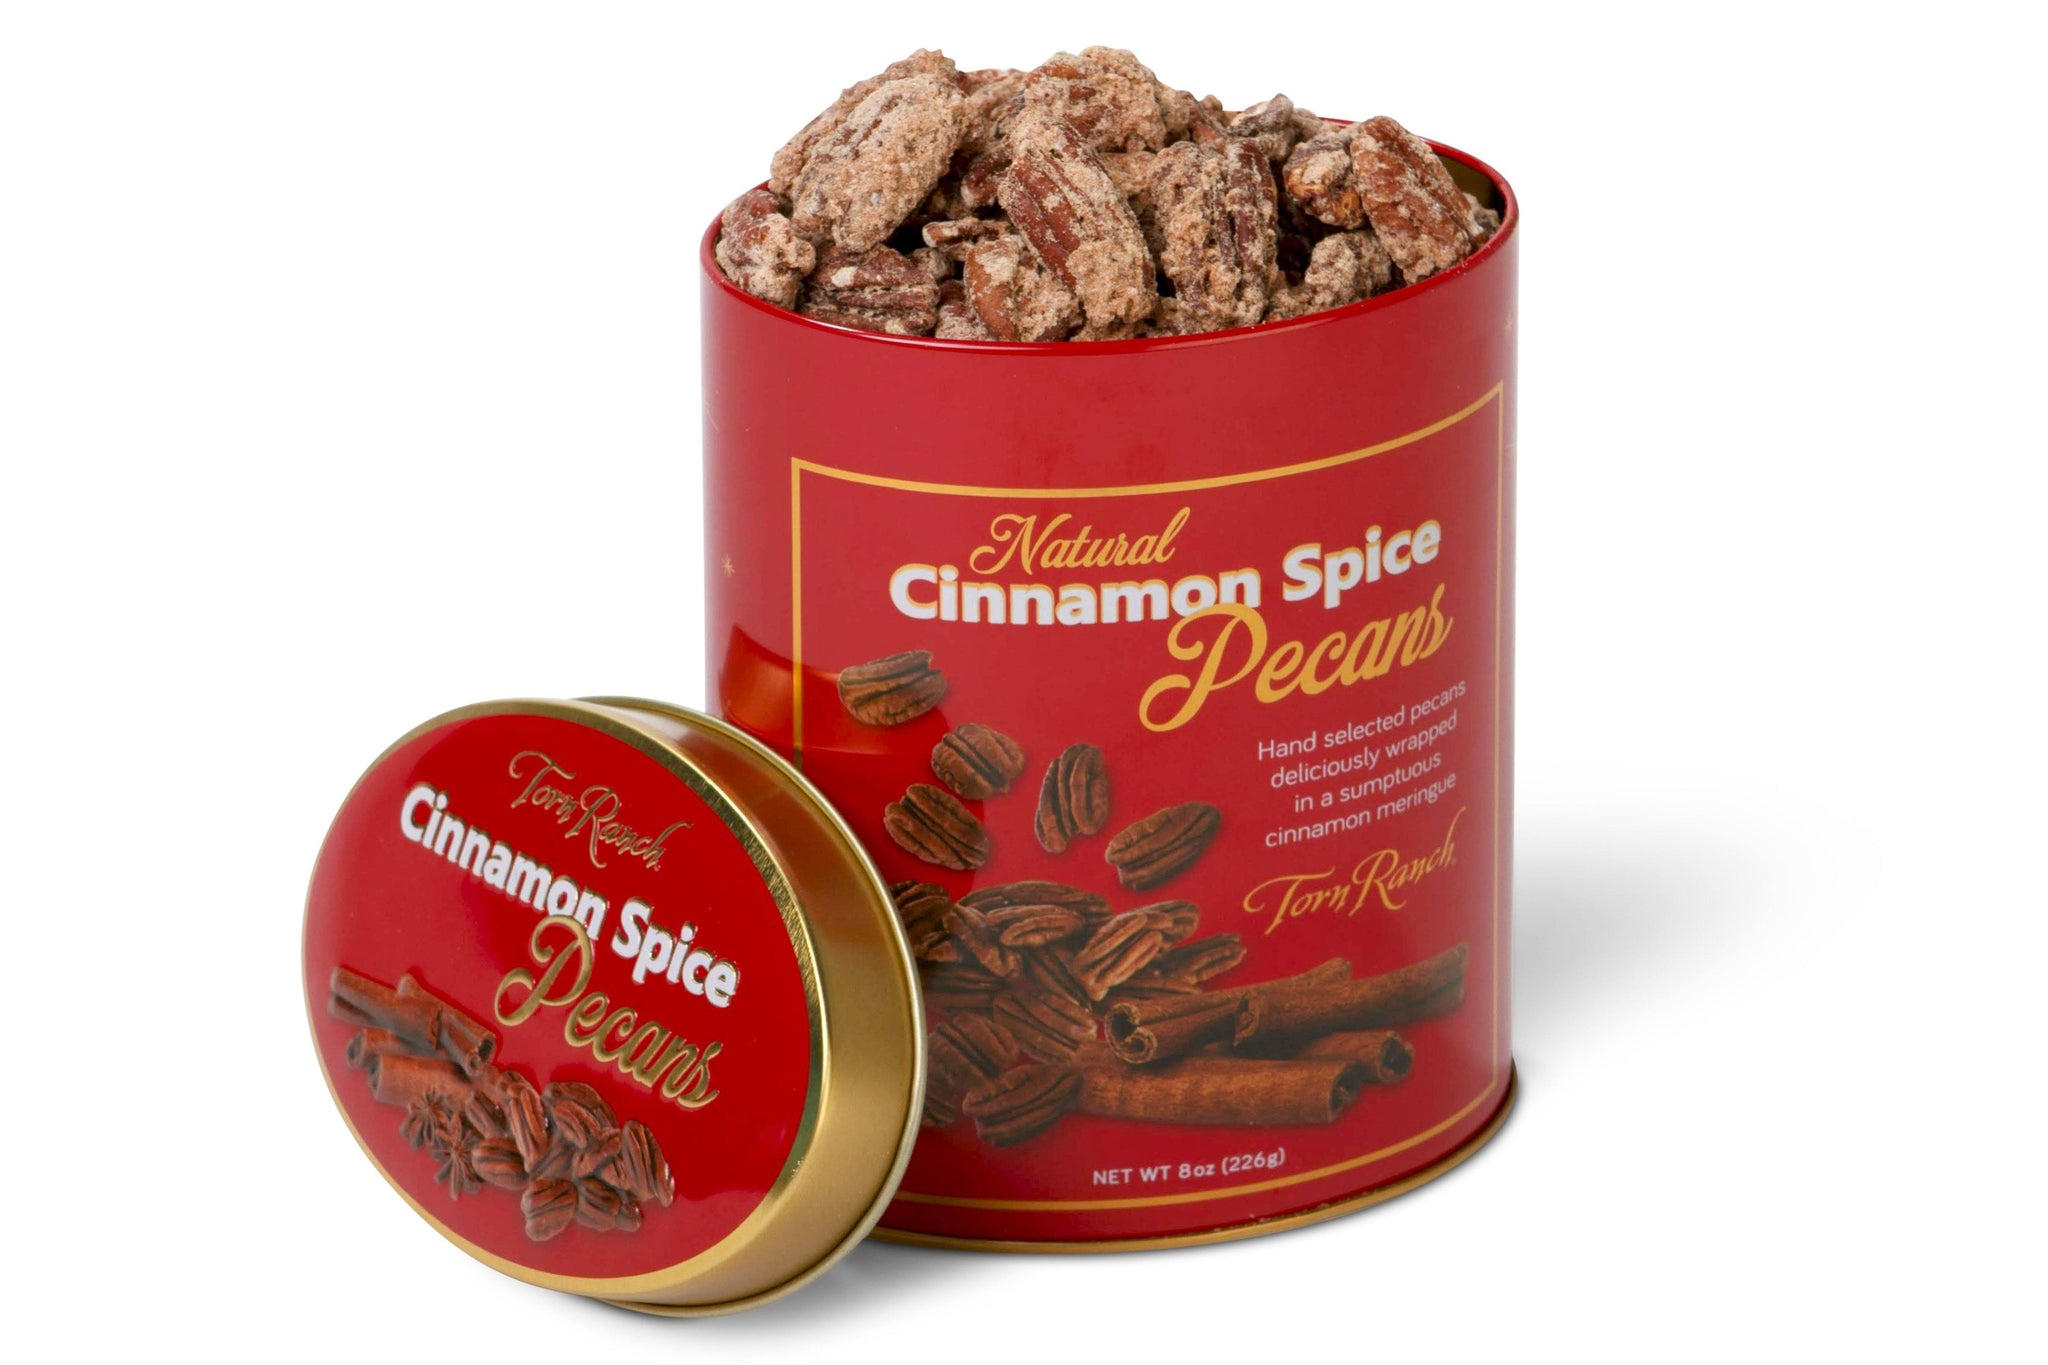 Cinnamon Spice Pecans in red decorative tin with lid off